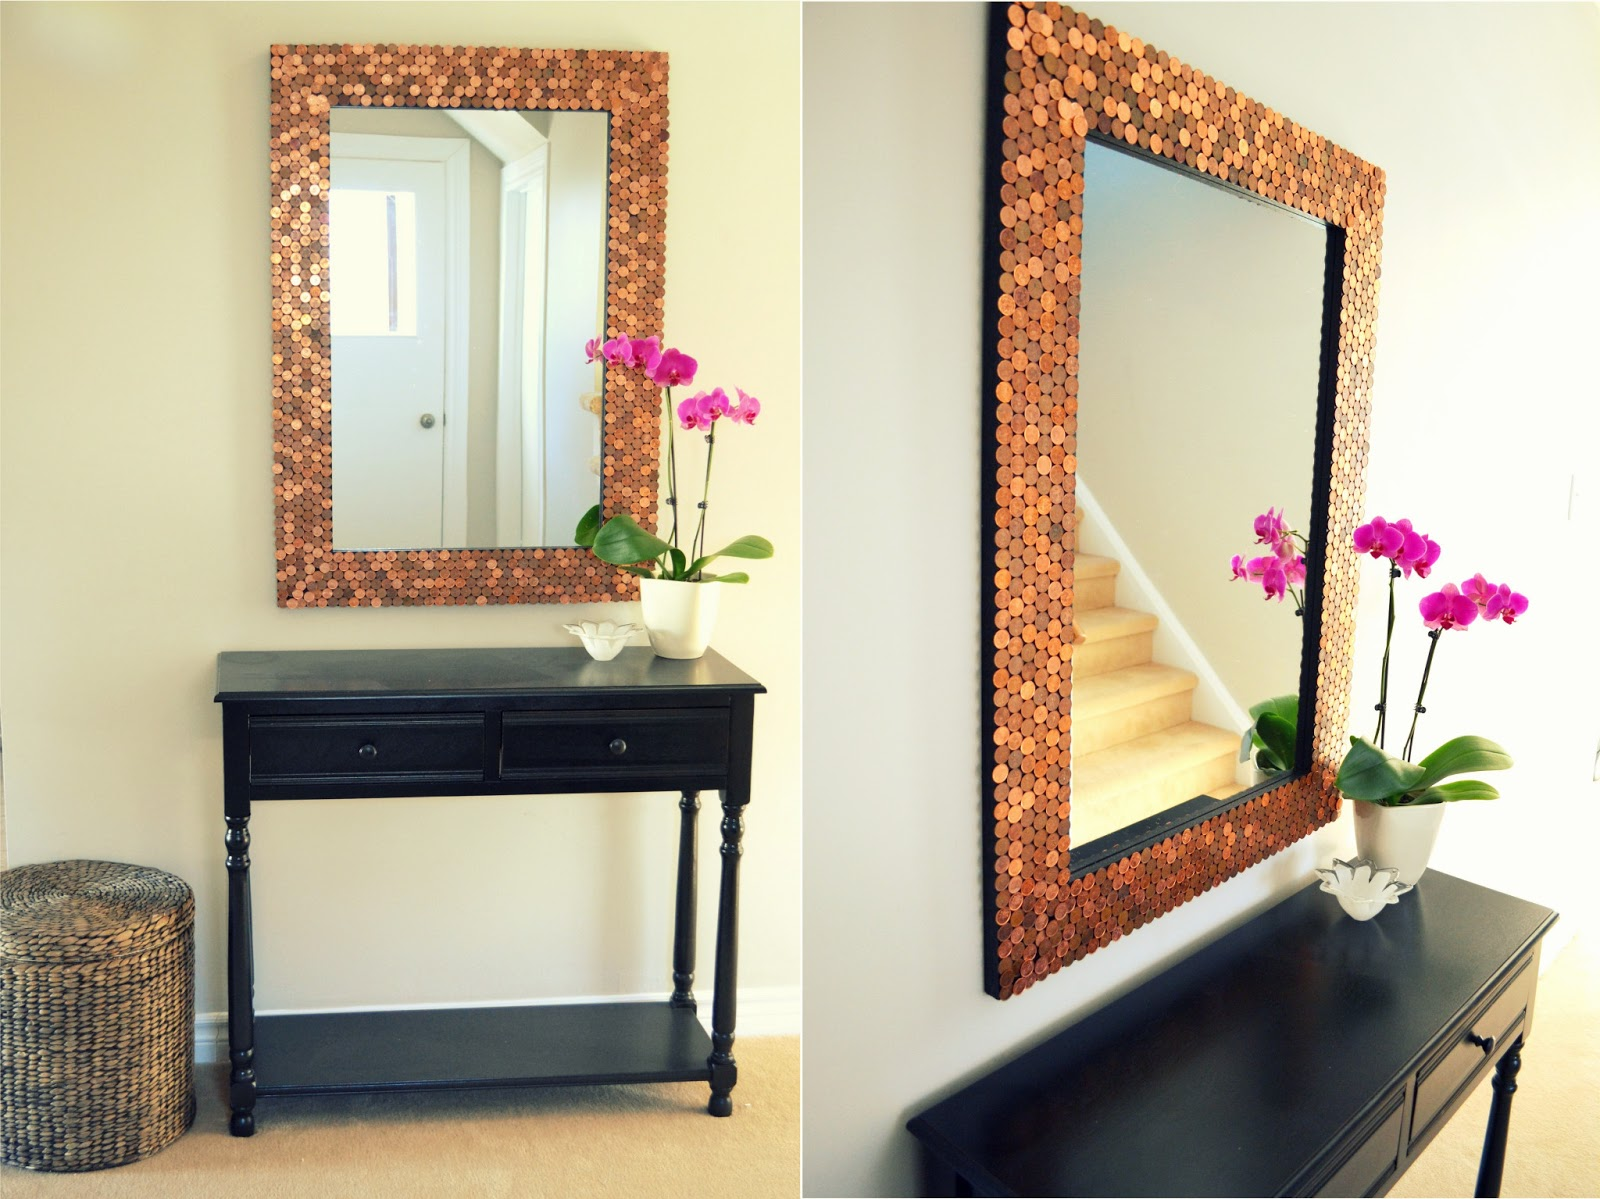 Diy Painted Mirror Frame Diy Painted Mirror Frame S - Ghane.co